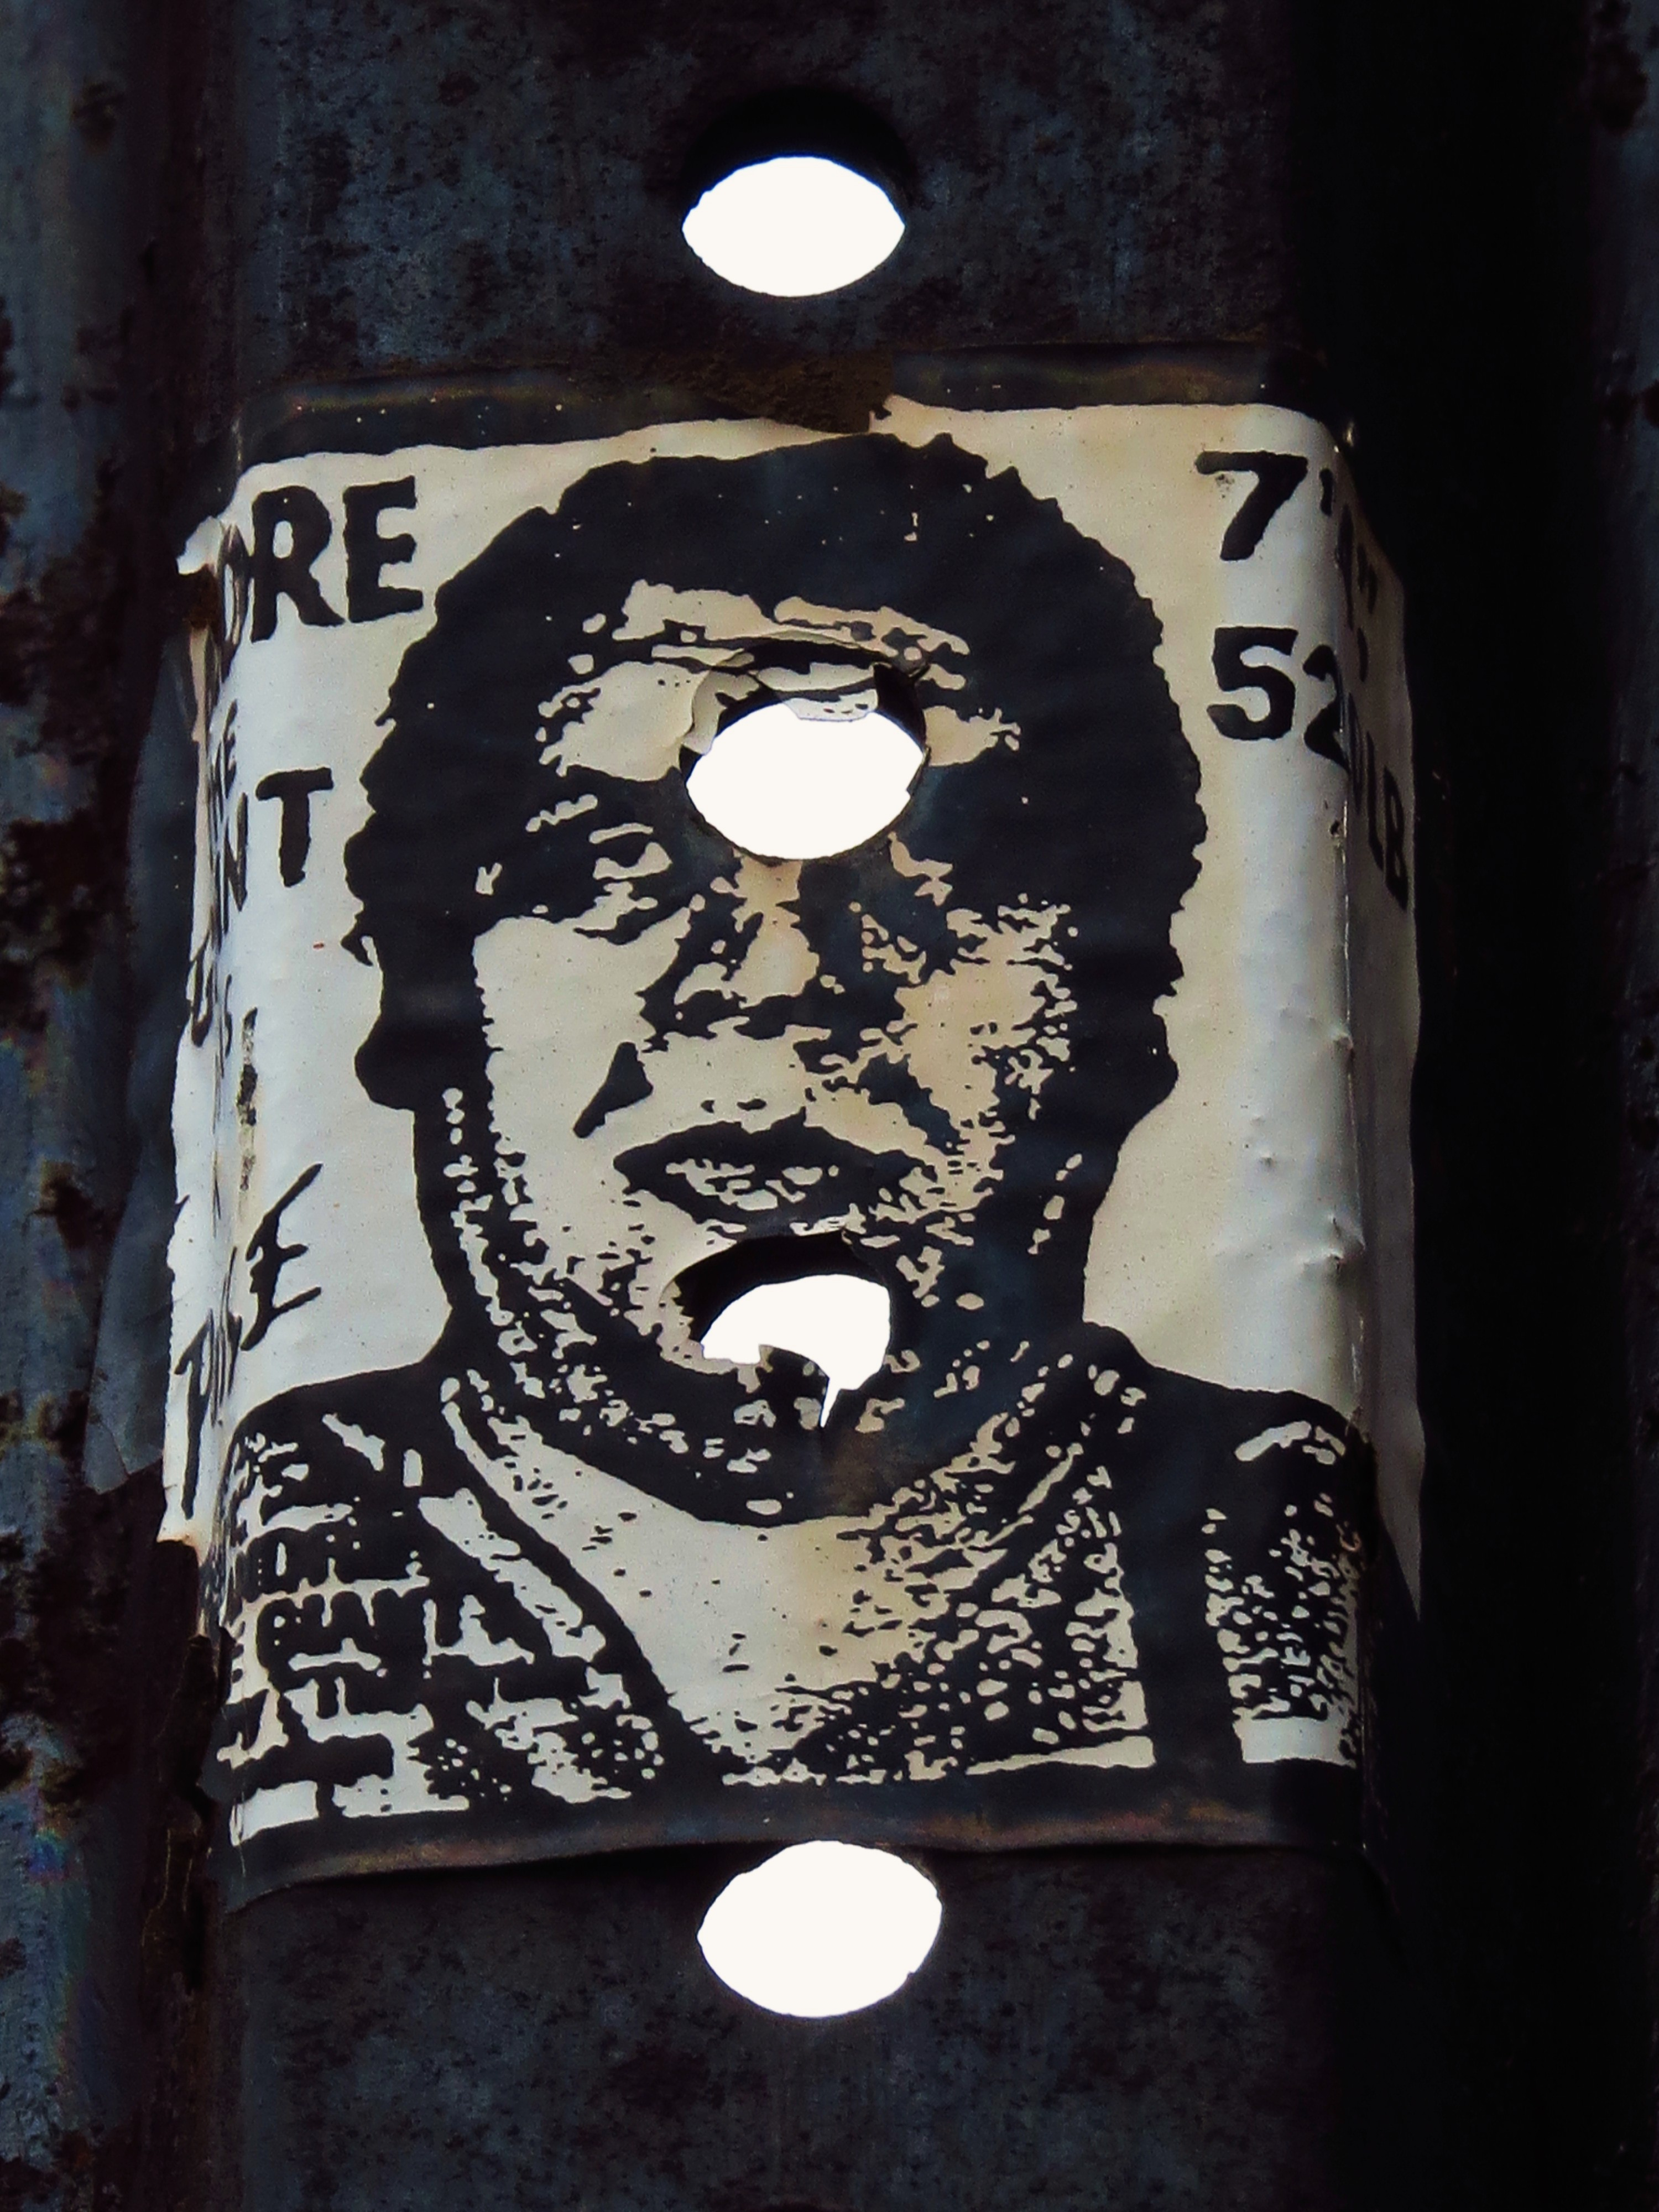 nyc graffiti andre the giant has to obey by shepard